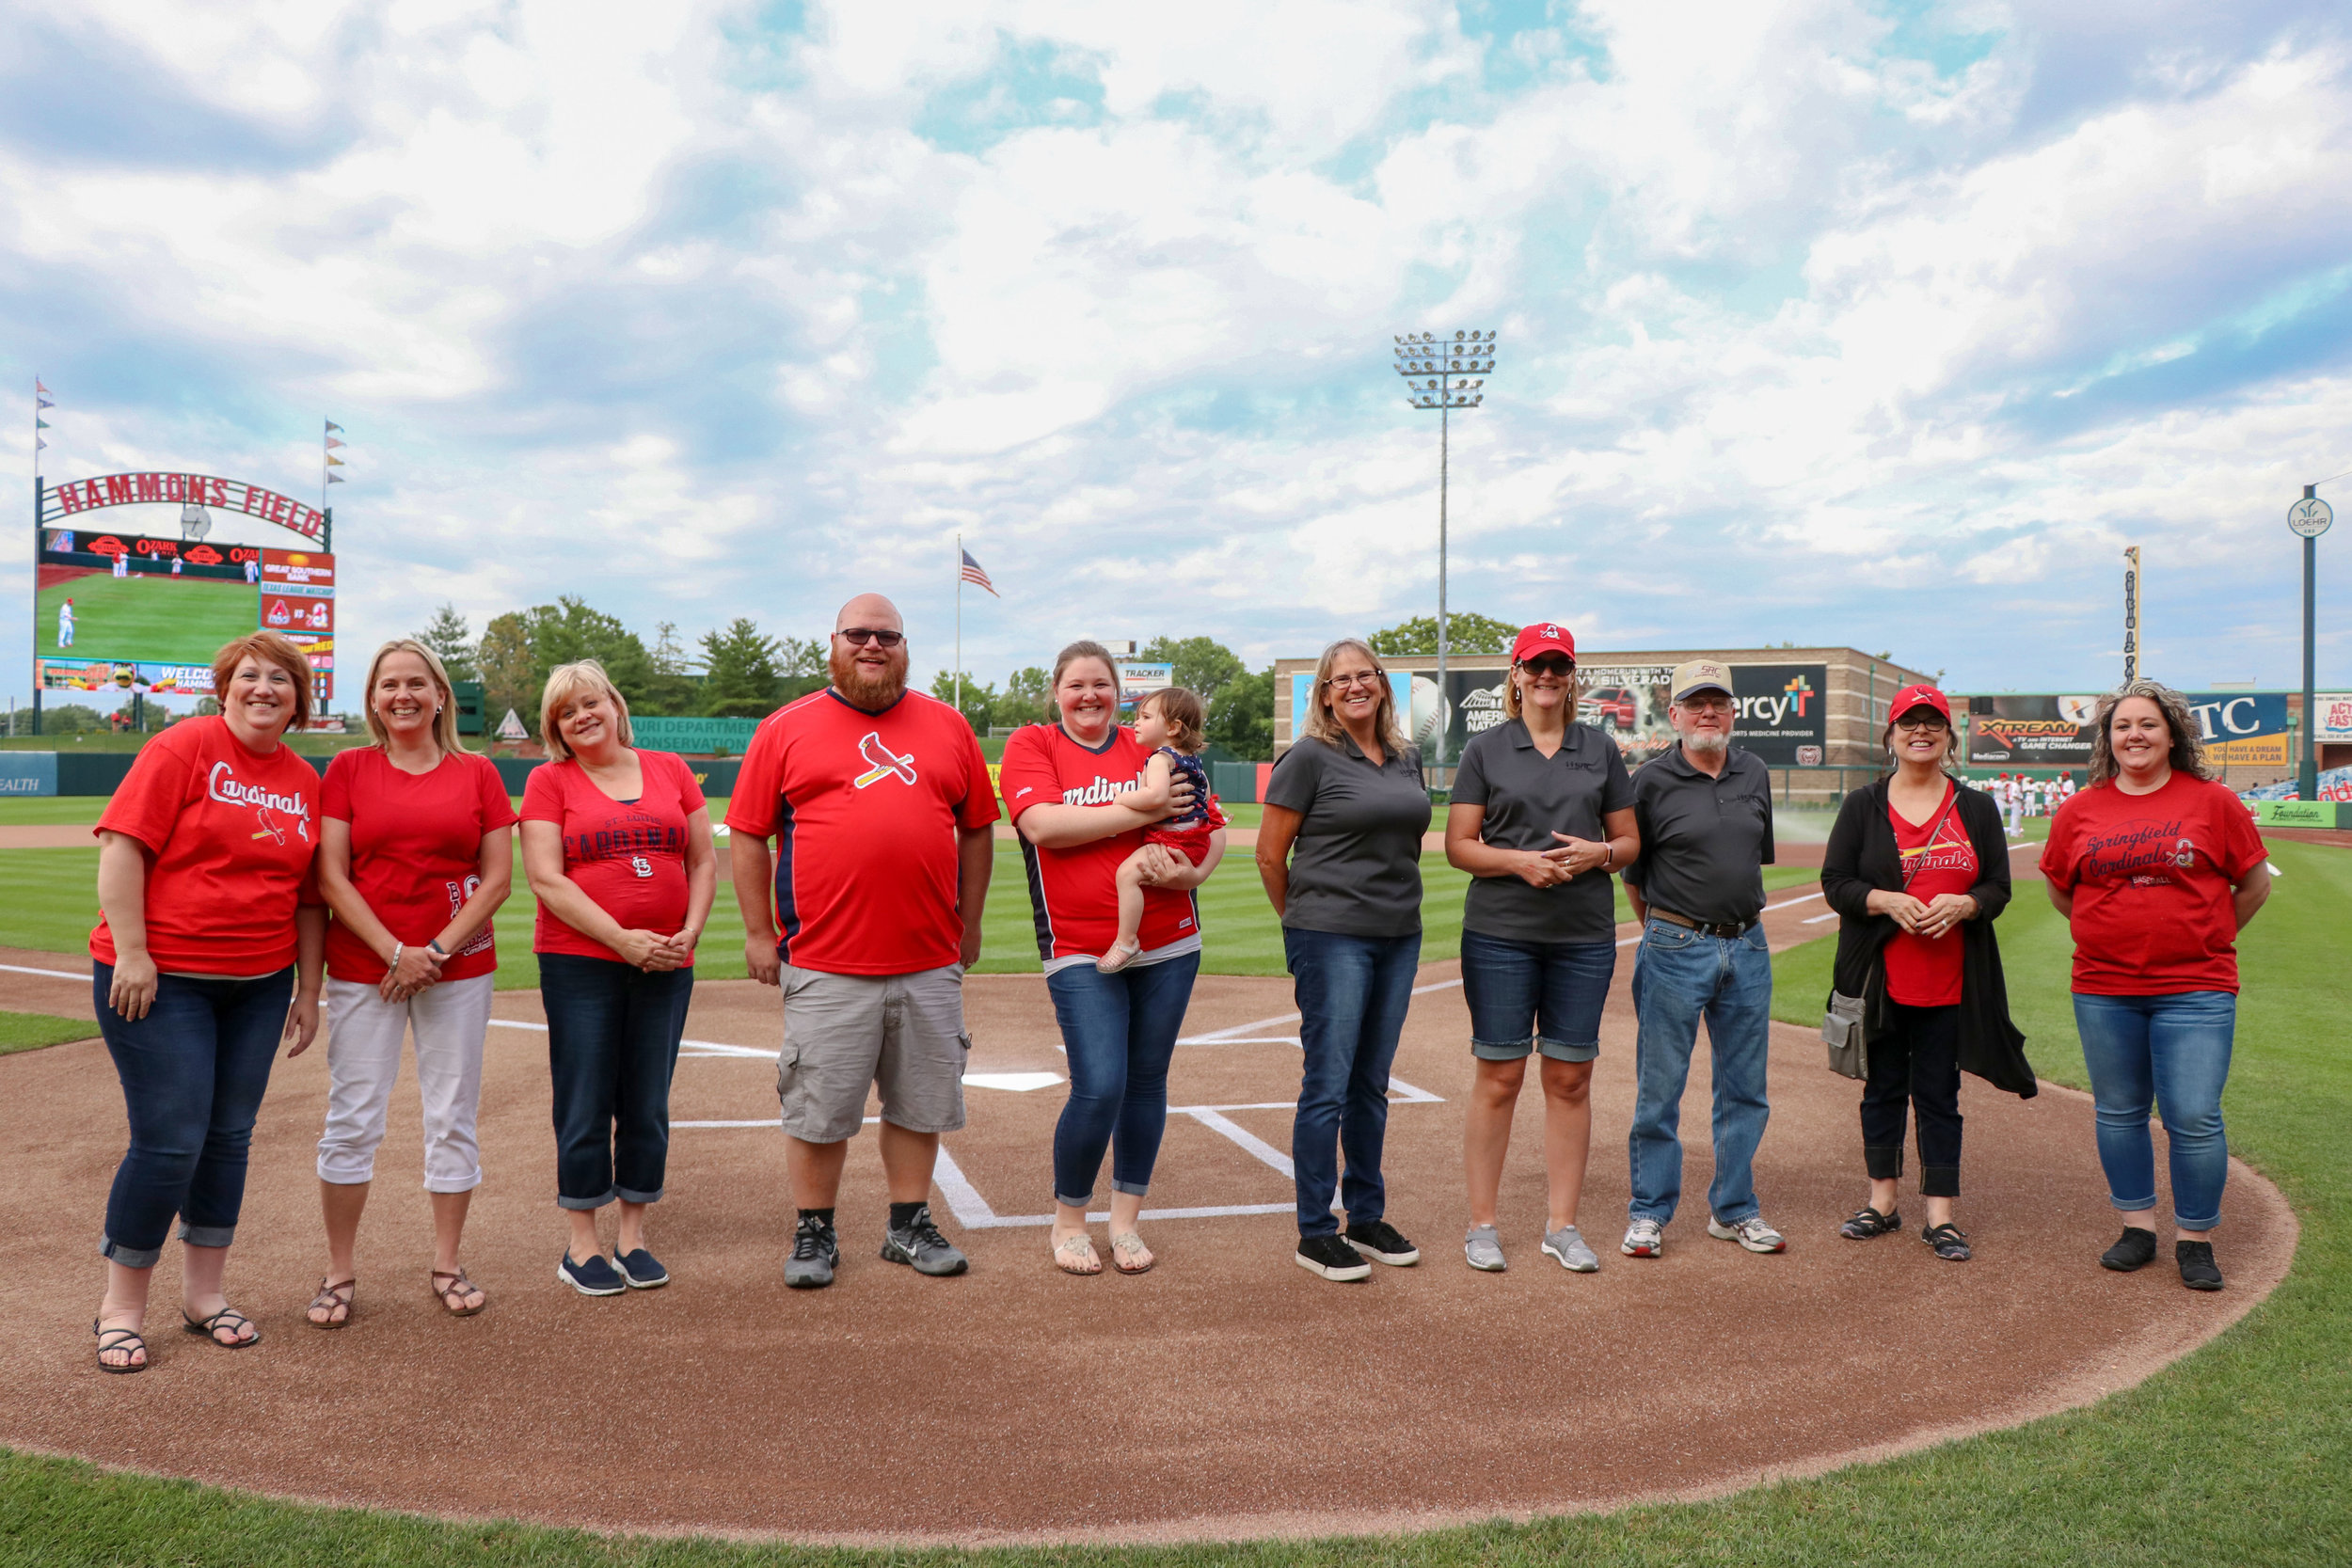 SRC's Community Relations Committee, consisting of associates from across all divisions,was honored at the Cardinals game for their work in supporting area non-profit organizations.